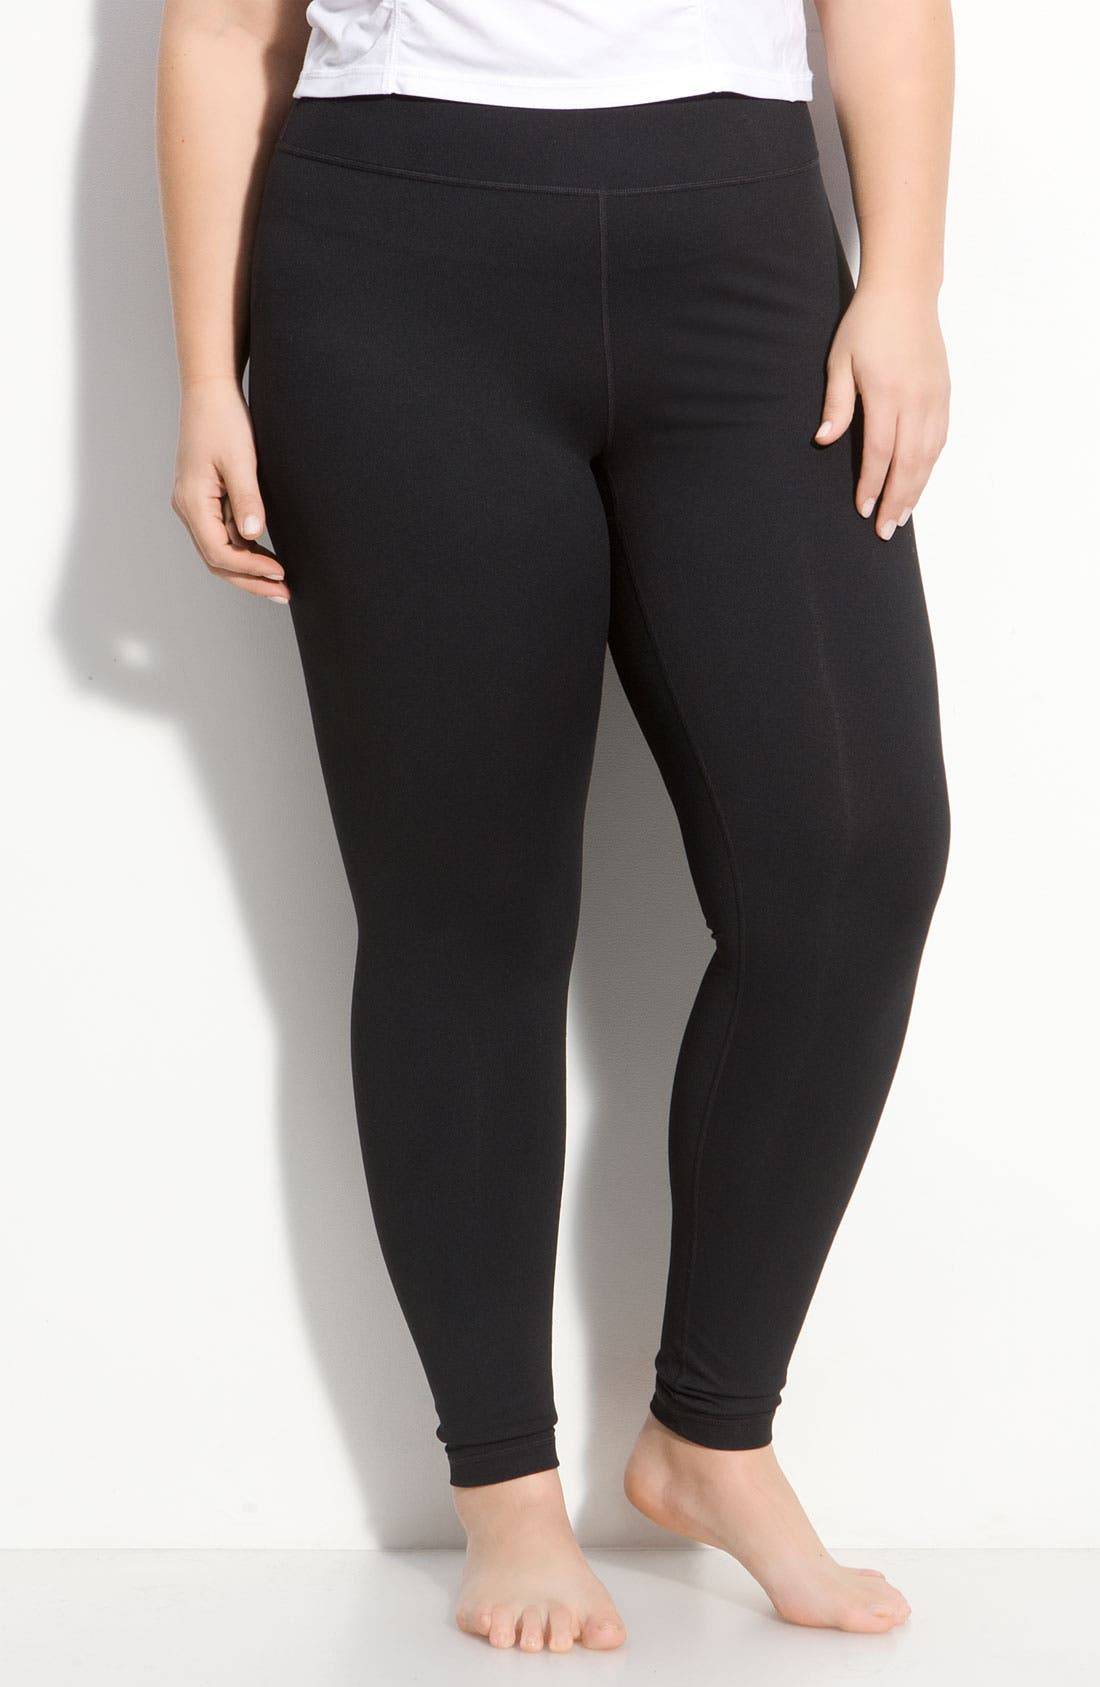 Zella Live In Leggings (Plus Size)